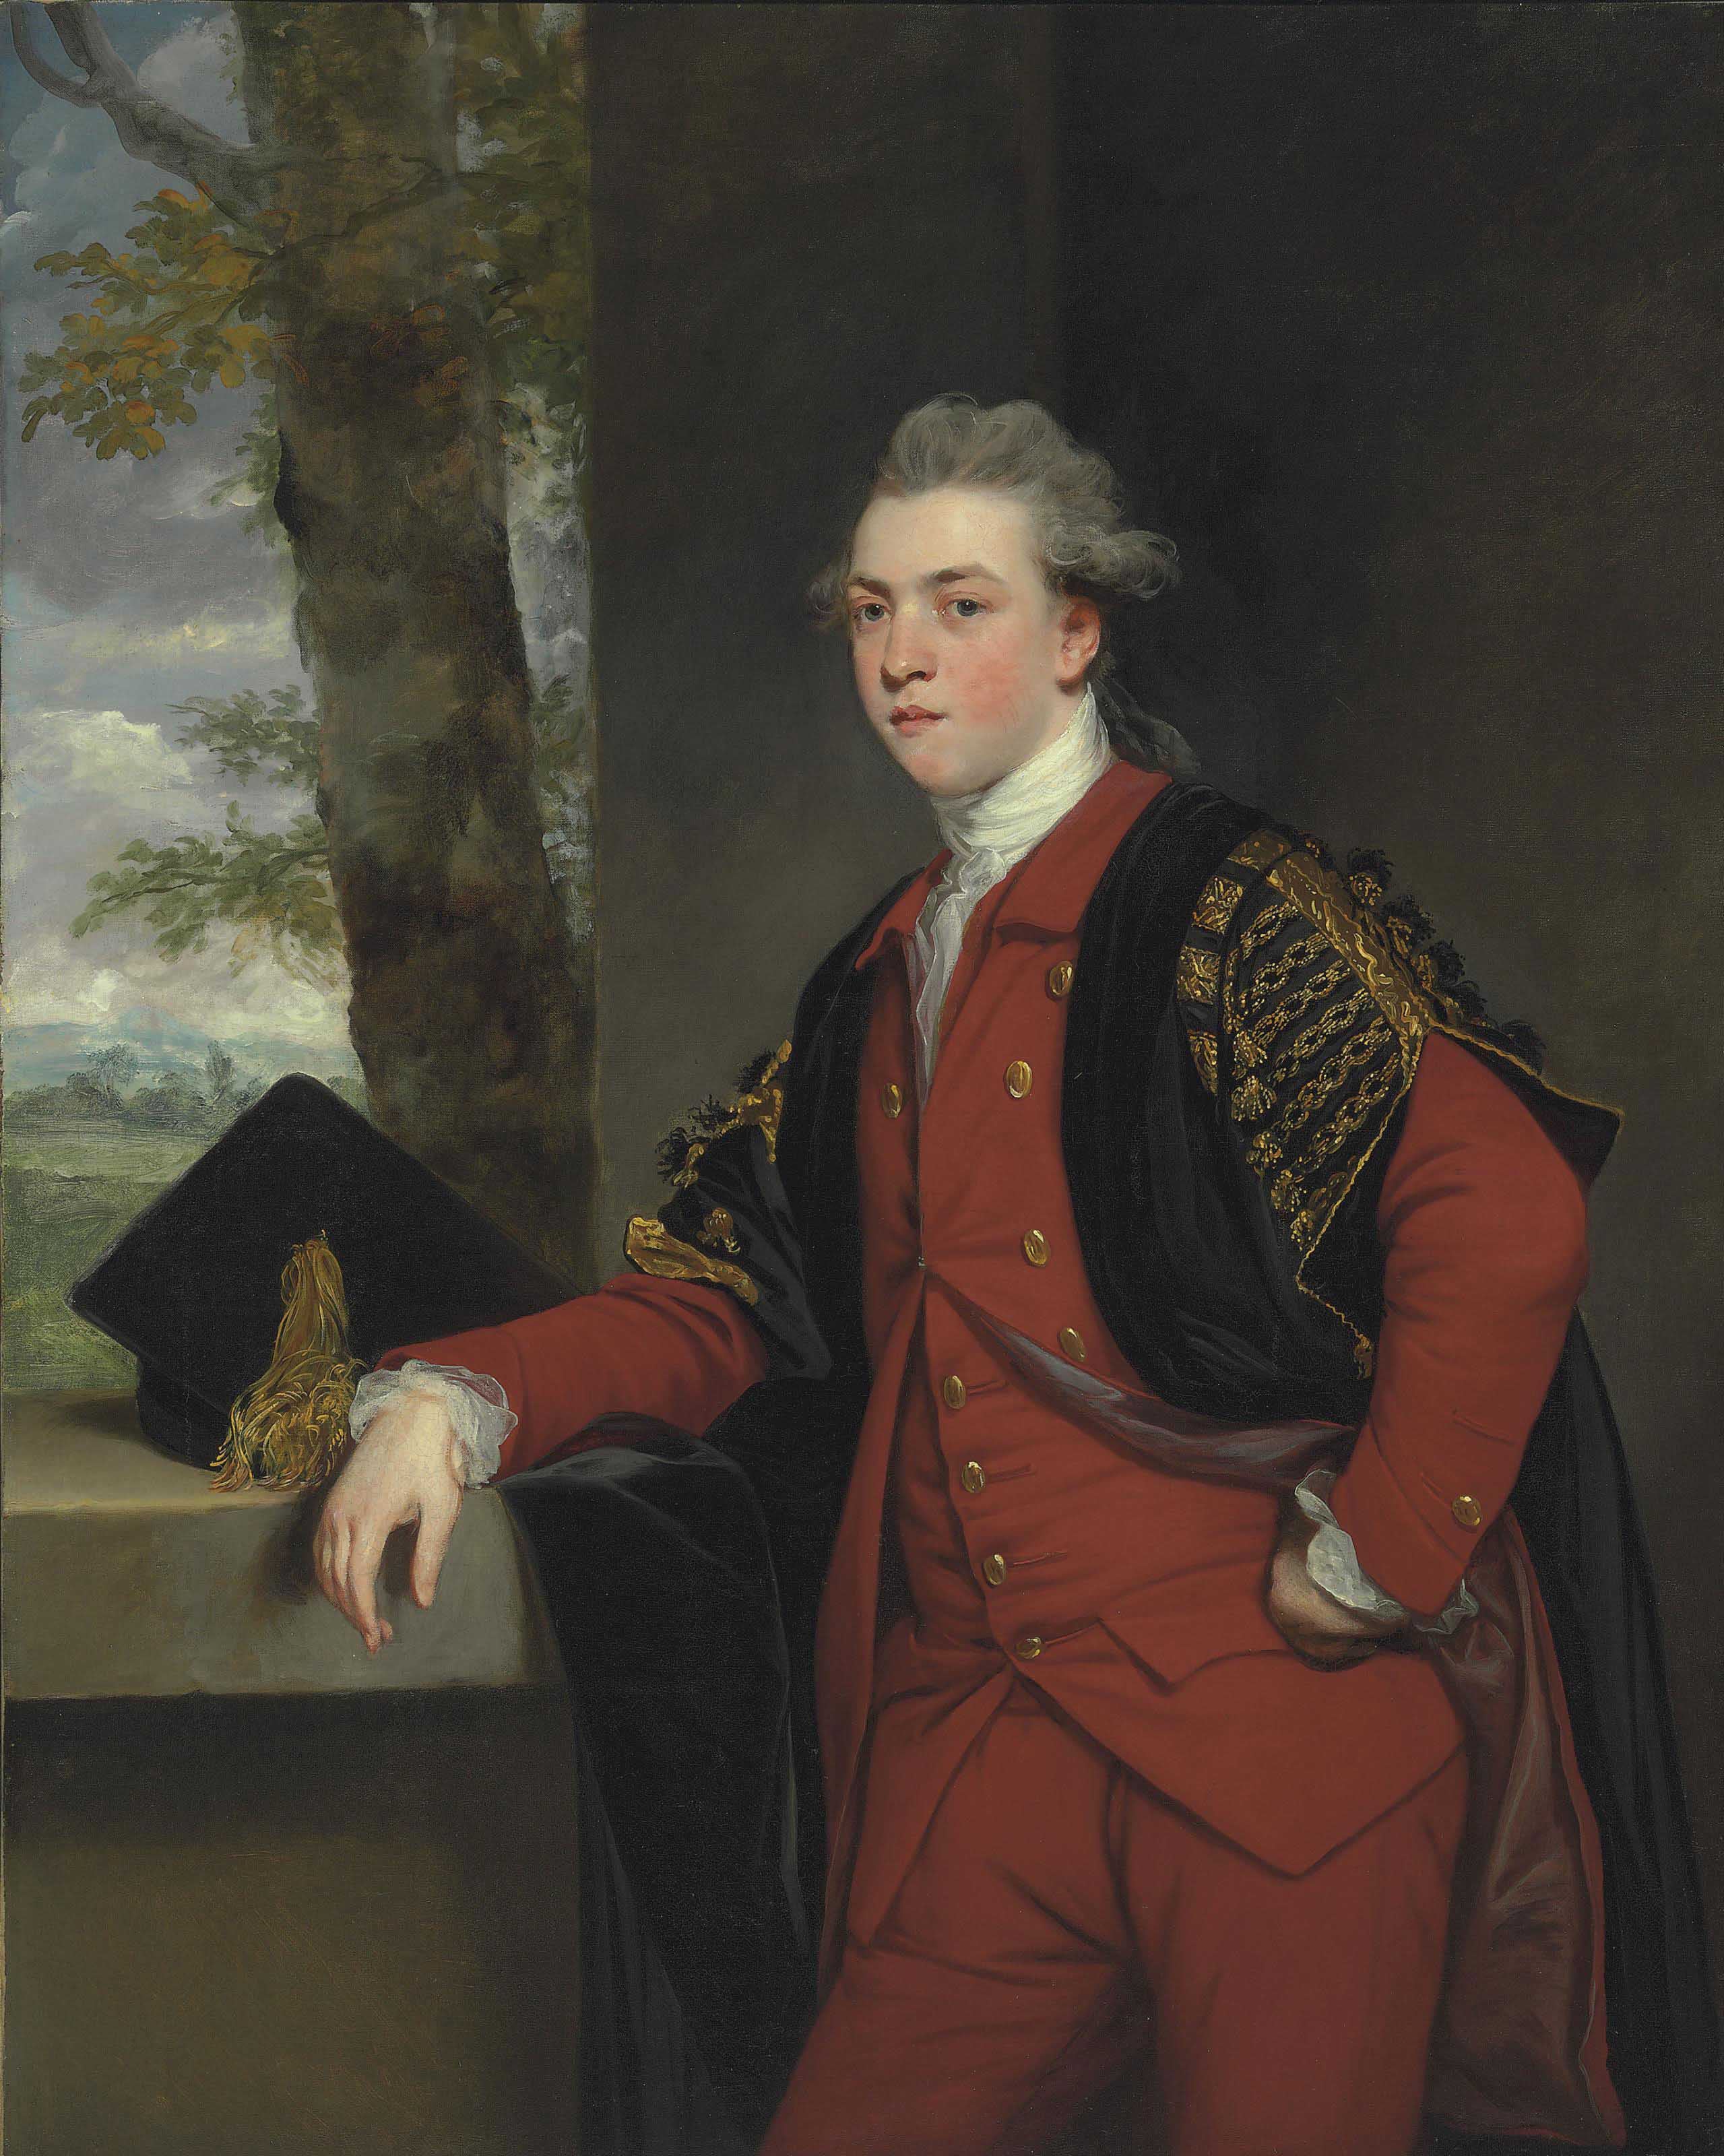 Sir Joshua Reynolds, P.R.A. (Plympton 1723-1792 London)